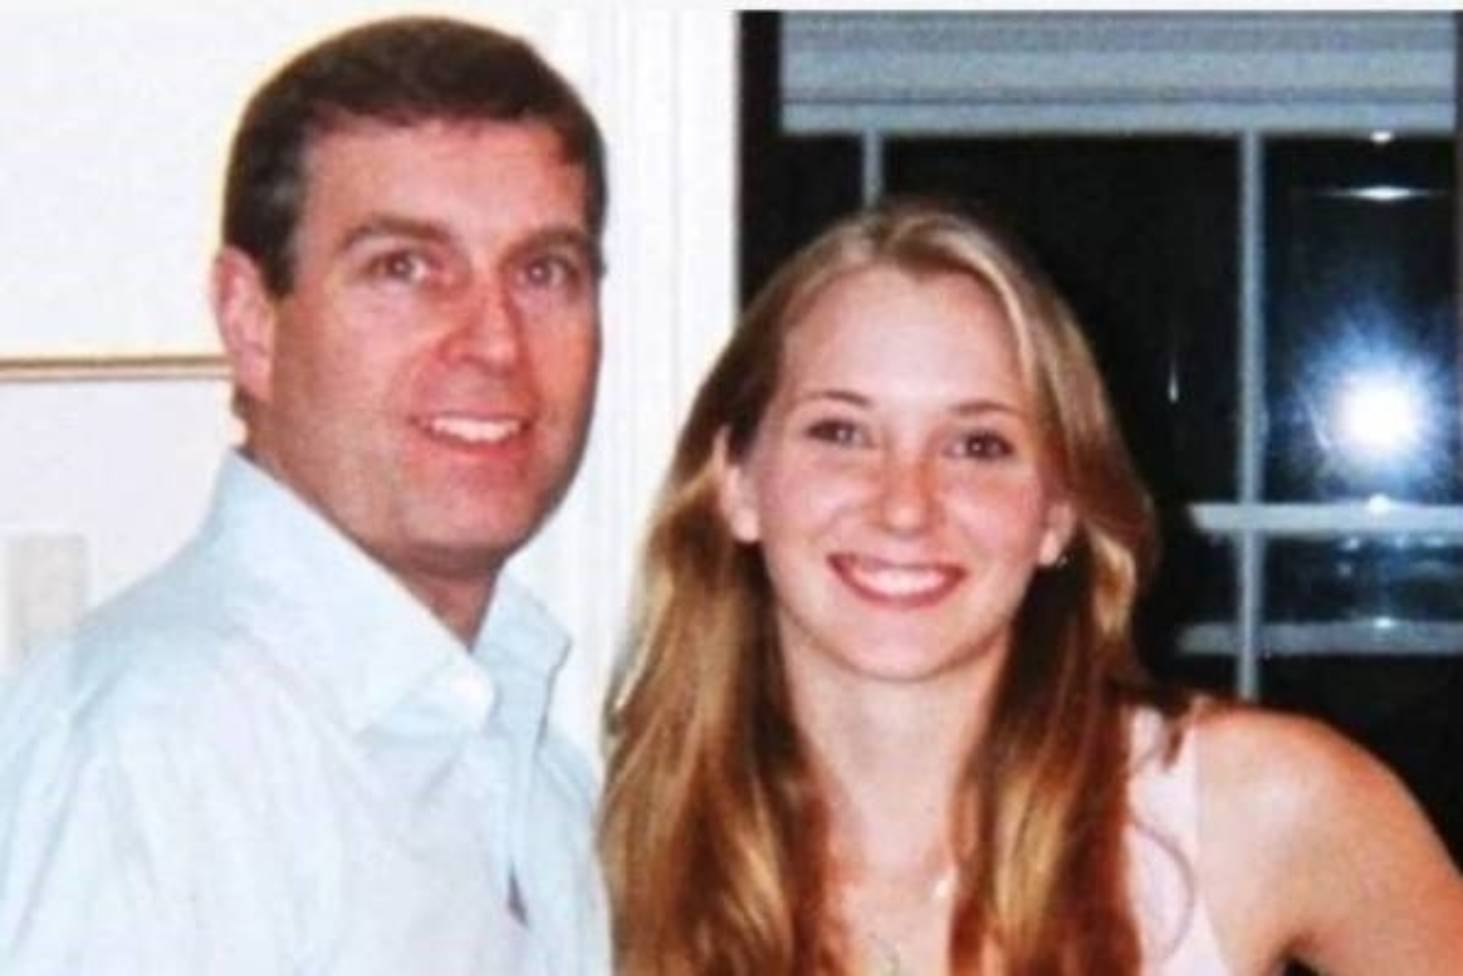 Grinding Against Her Prince Andrew Faces New Claims In Epstein